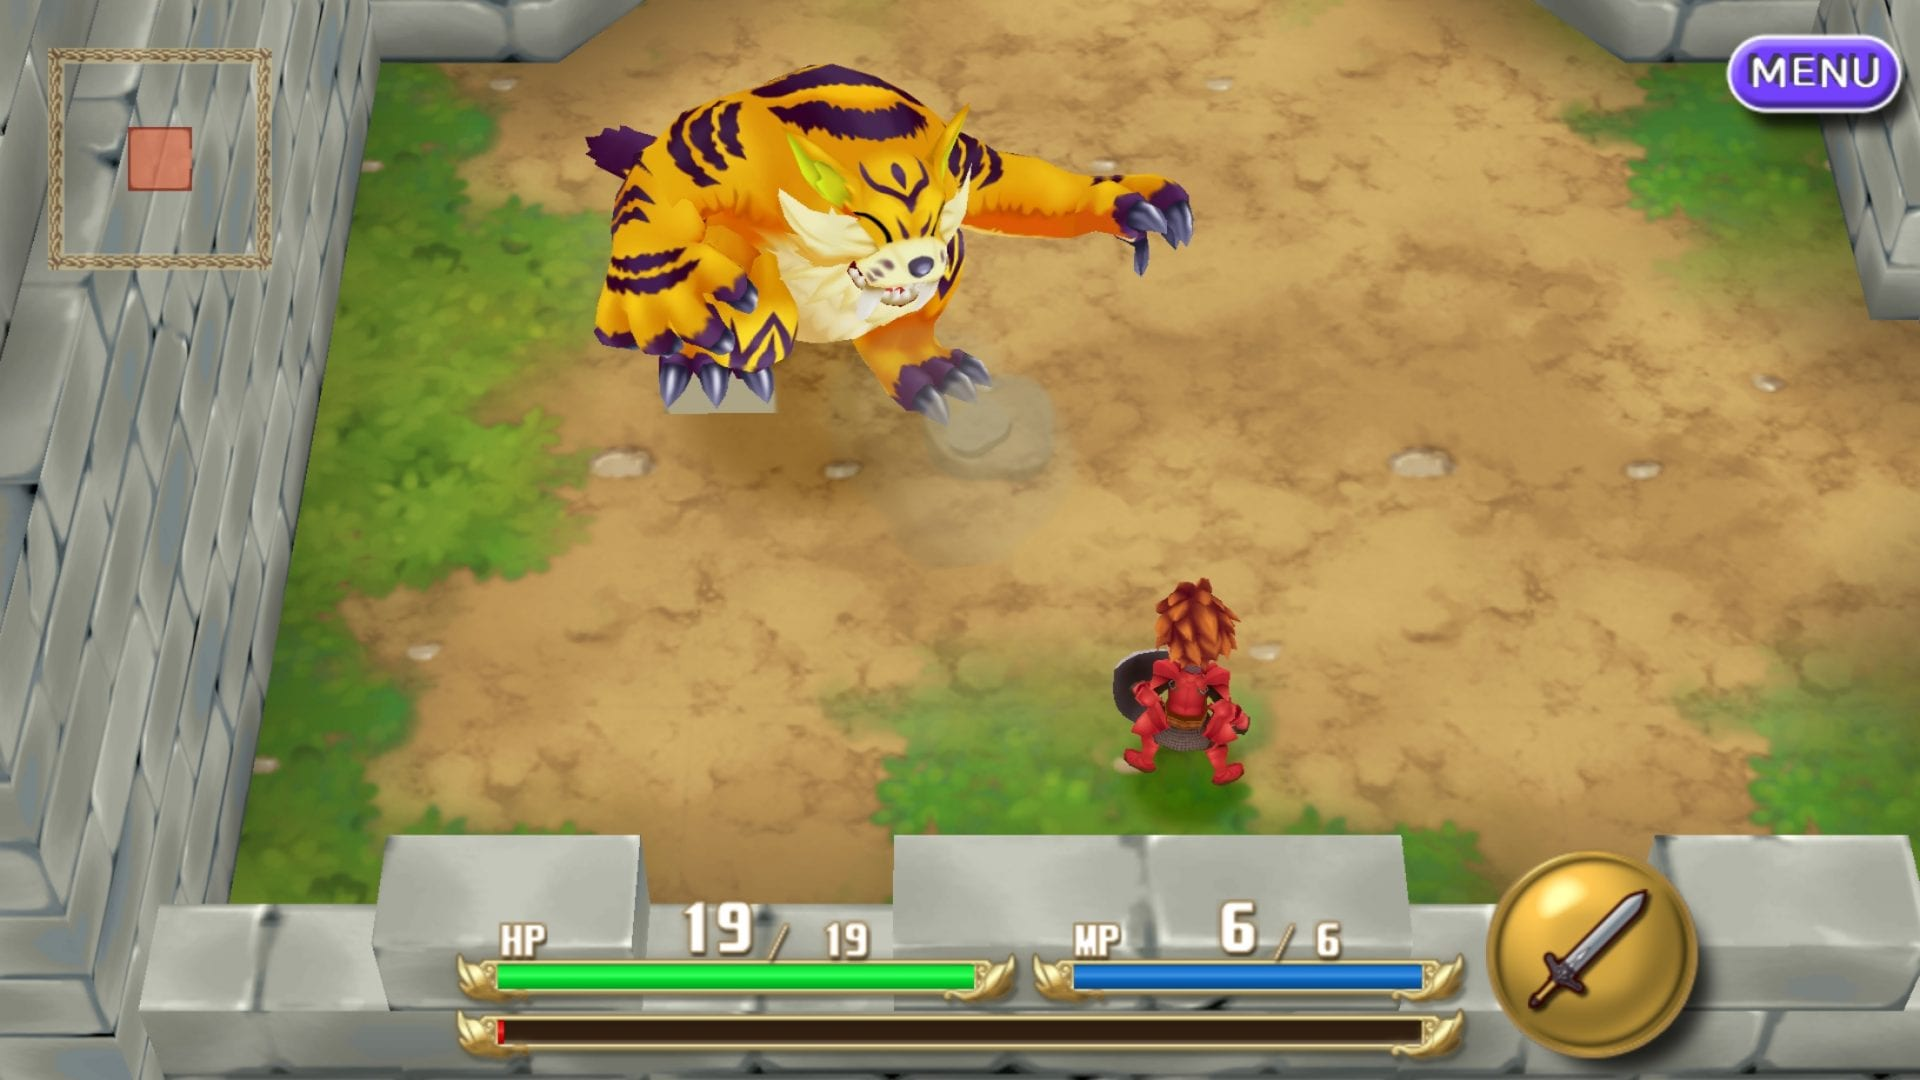 Adventures of Mana Gets a Surprise Release on PS Vita